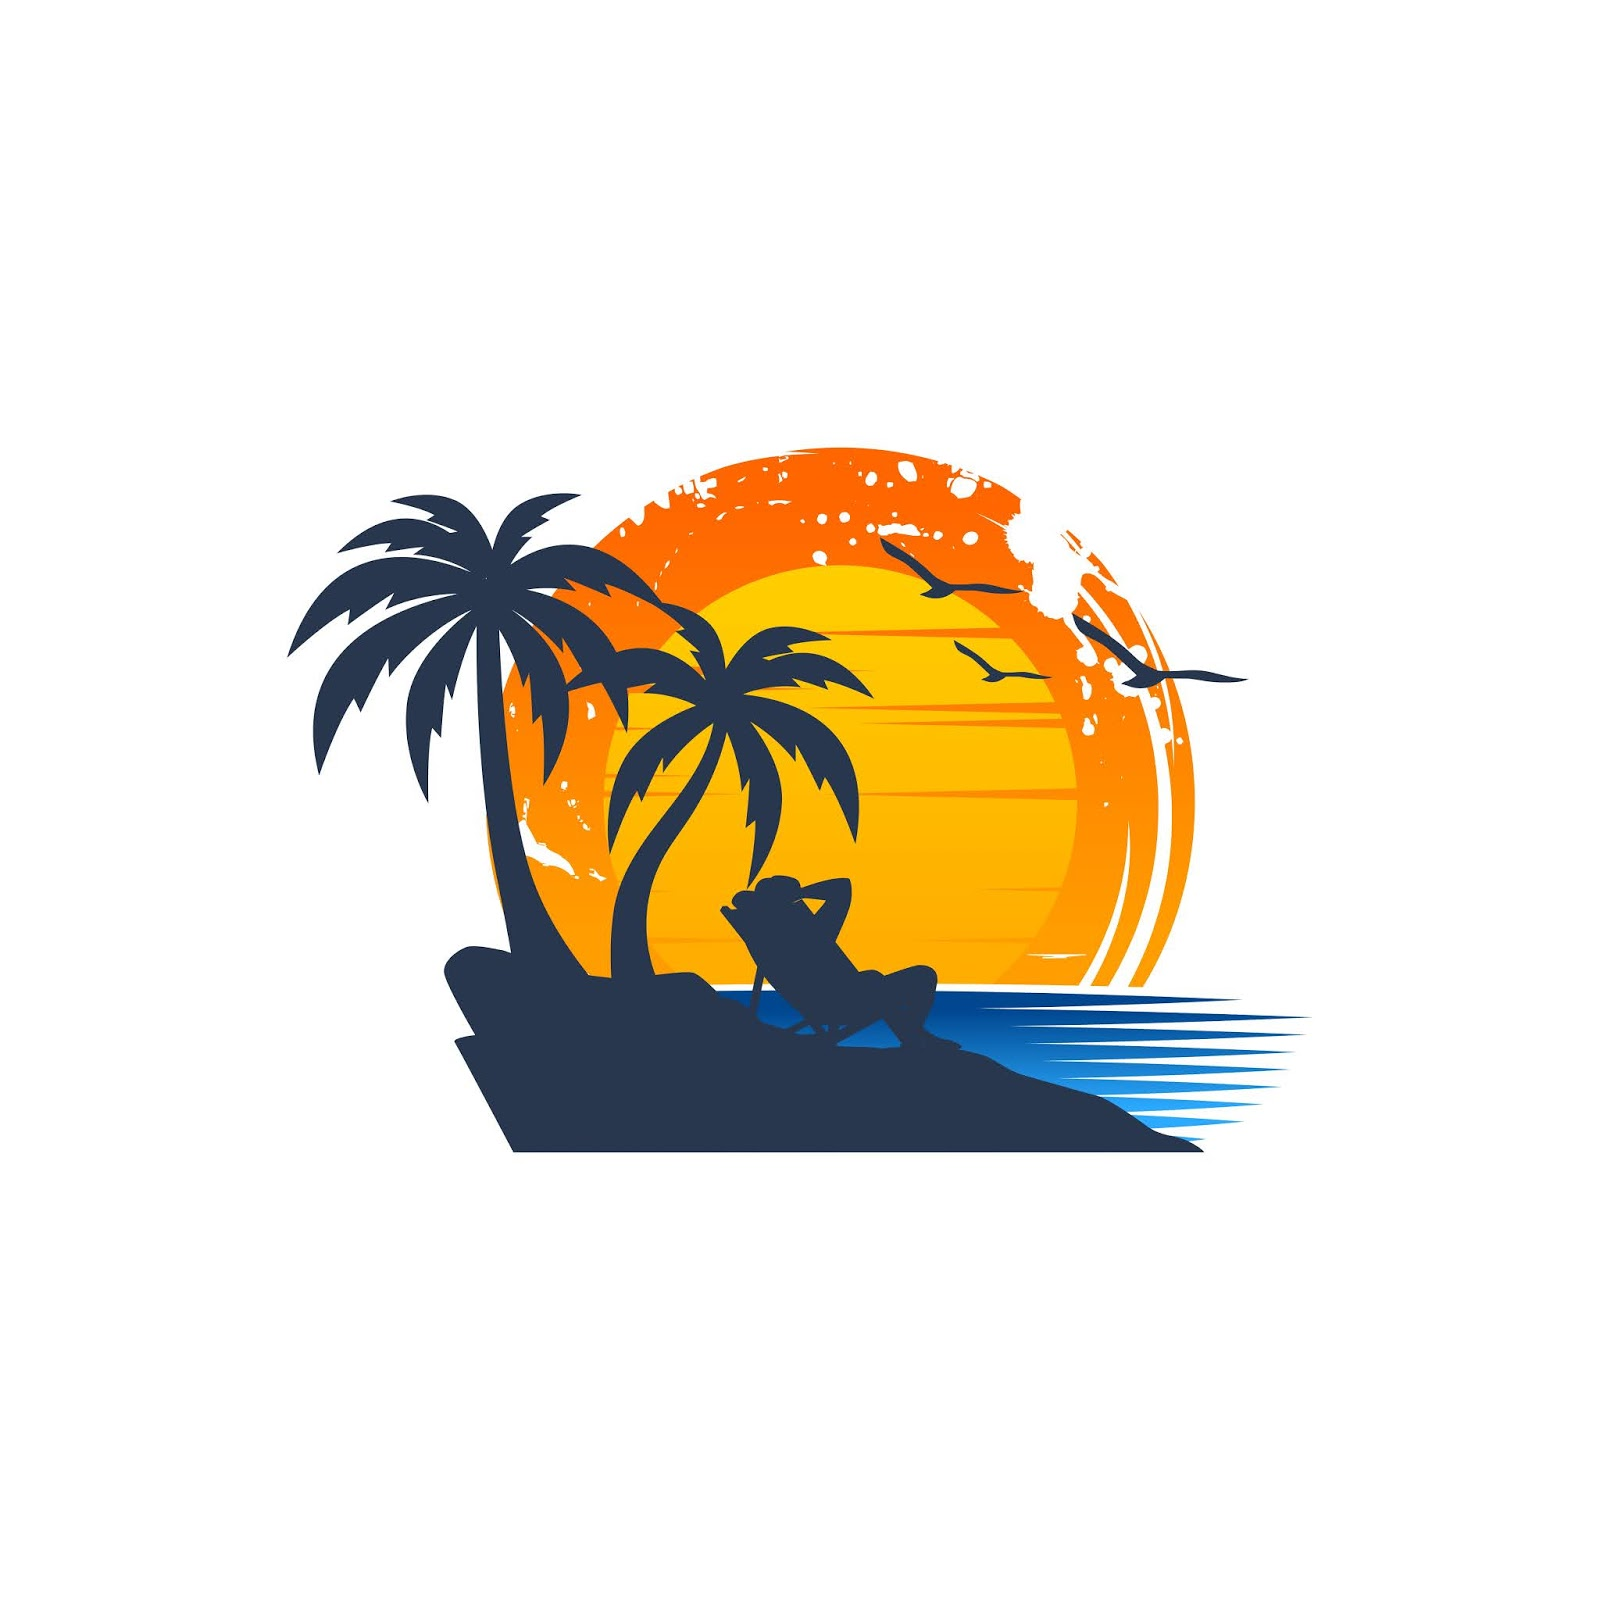 Beach Logo Cool.jpg Free Download Vector CDR, AI, EPS and PNG Formats